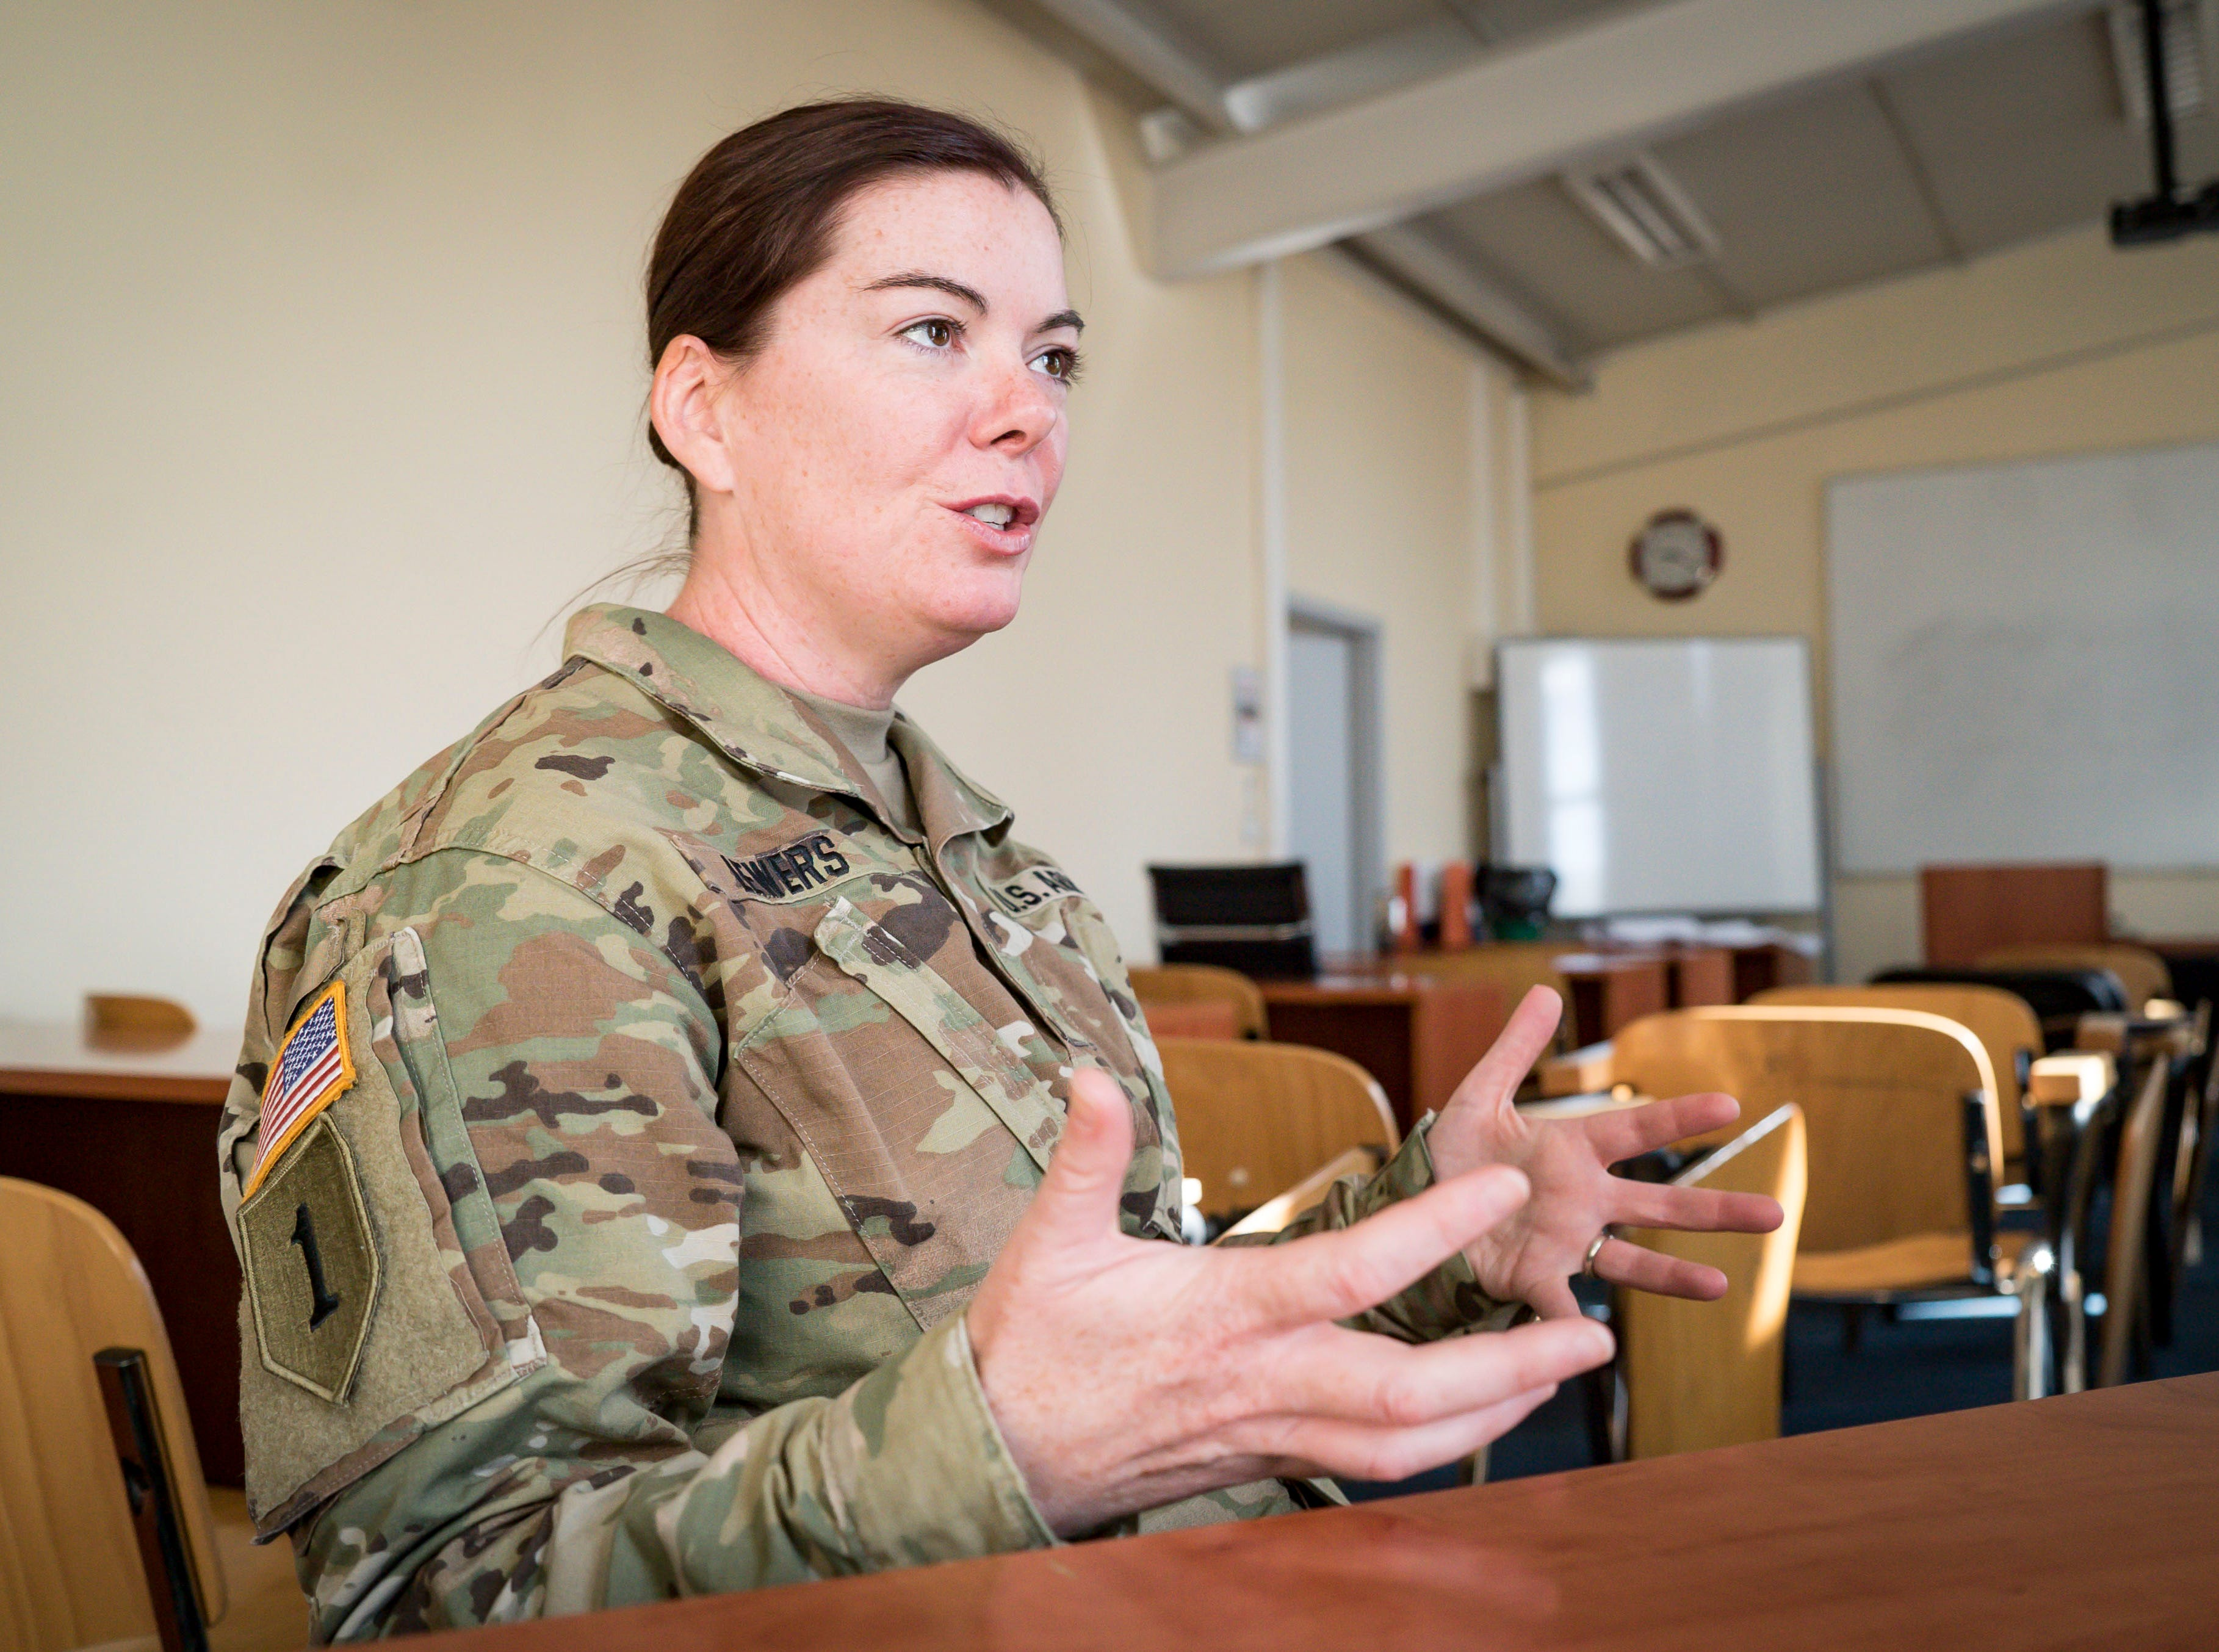 Maj. Kerri Lewers, 41, of West Des Moines, Bilateral Affairs Officer, part of the Department of Defense team within the American embassy coordinating assistance to the Kosovo Security Force (KSF).Shown here Tuesday, Sept. 18, 2018, at RIT's American University of Kosovo camps in Pristina.